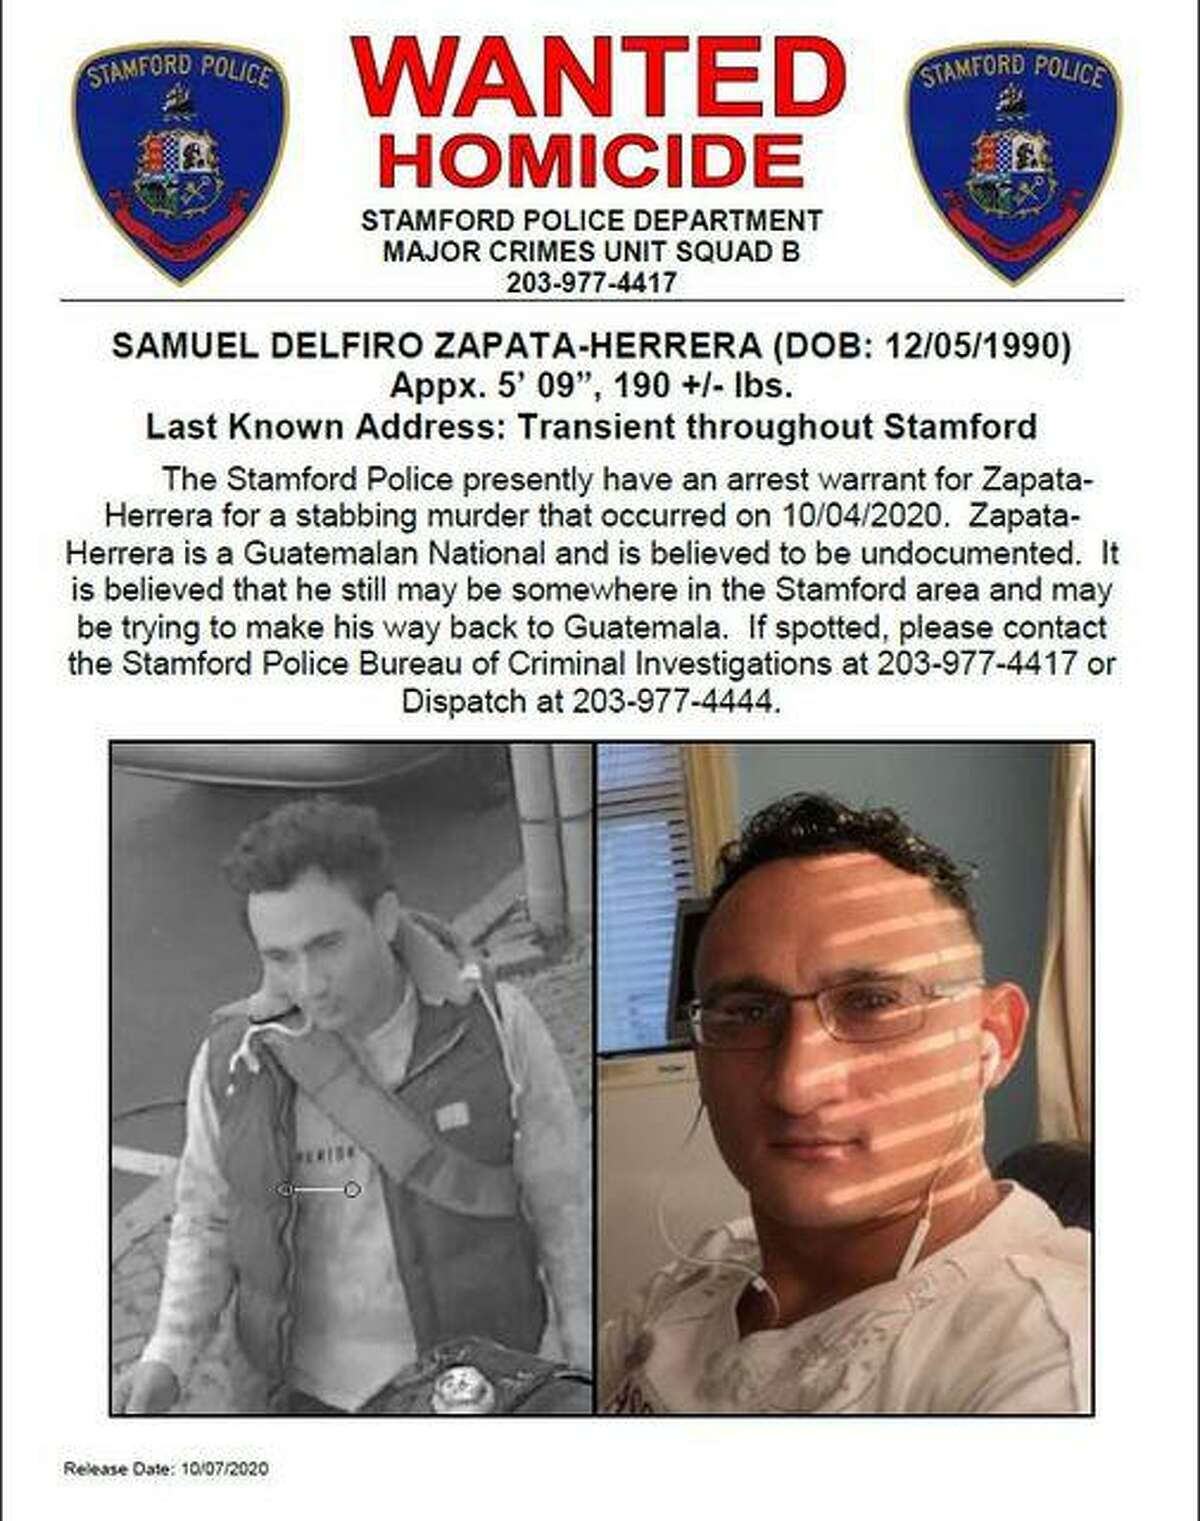 Stamford police have released a flyer with information on Samuel Delfiro Zapata-Herrera, 29, who they say is wanted for questioning in a Sunday night homicide.